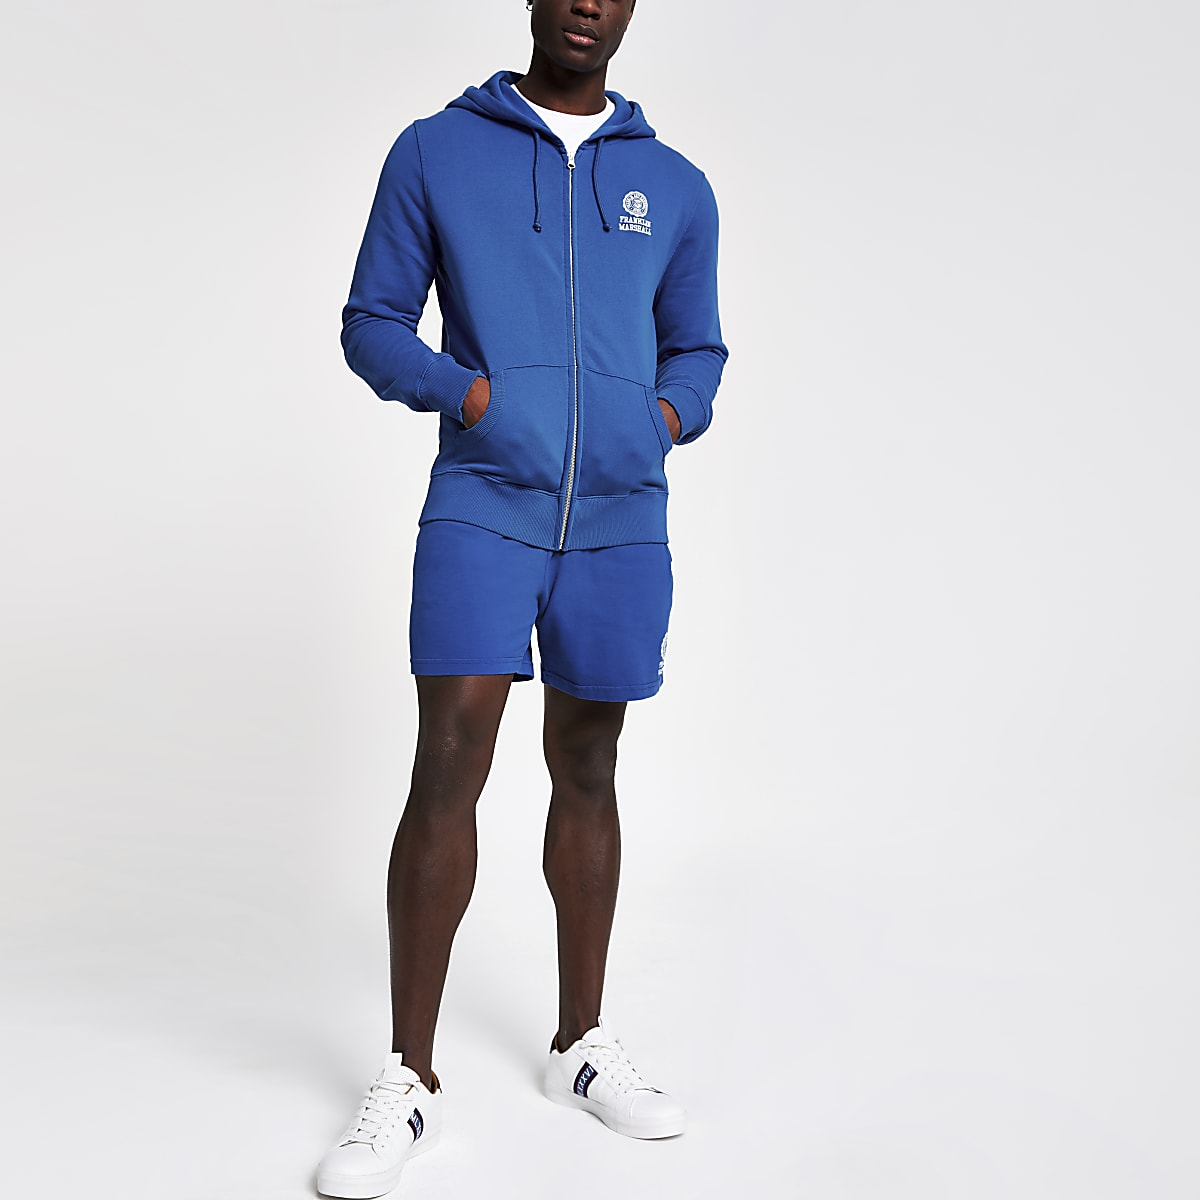 Franklin and Marshall blue zip hoodie